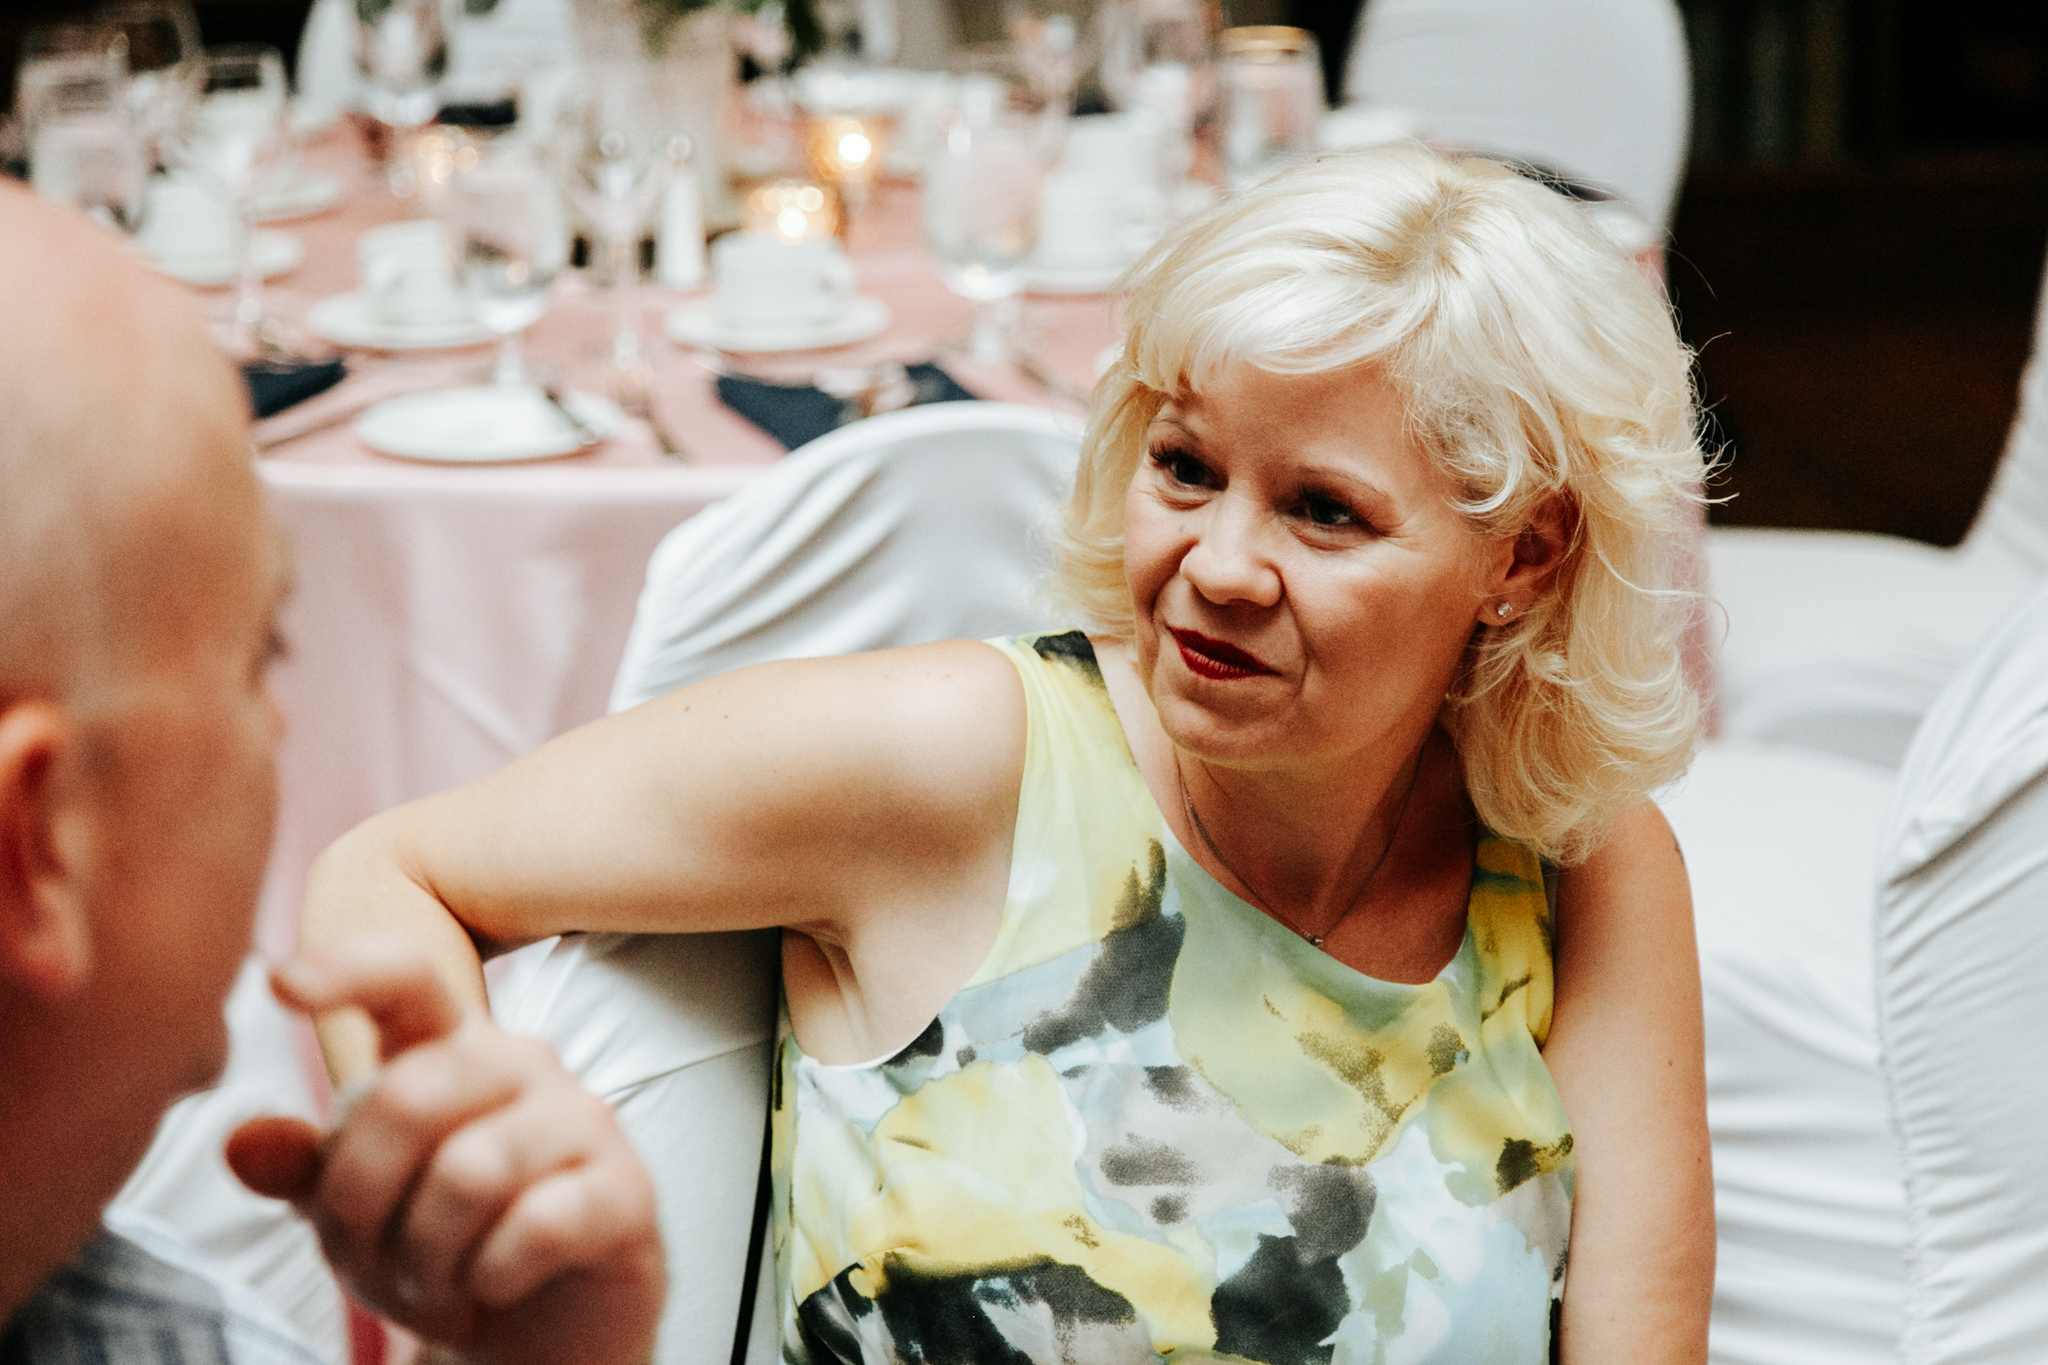 red-deer-wedding-photographer-love-and-be-loved-photography-emily-gab-photo-image-picture-203.jpg